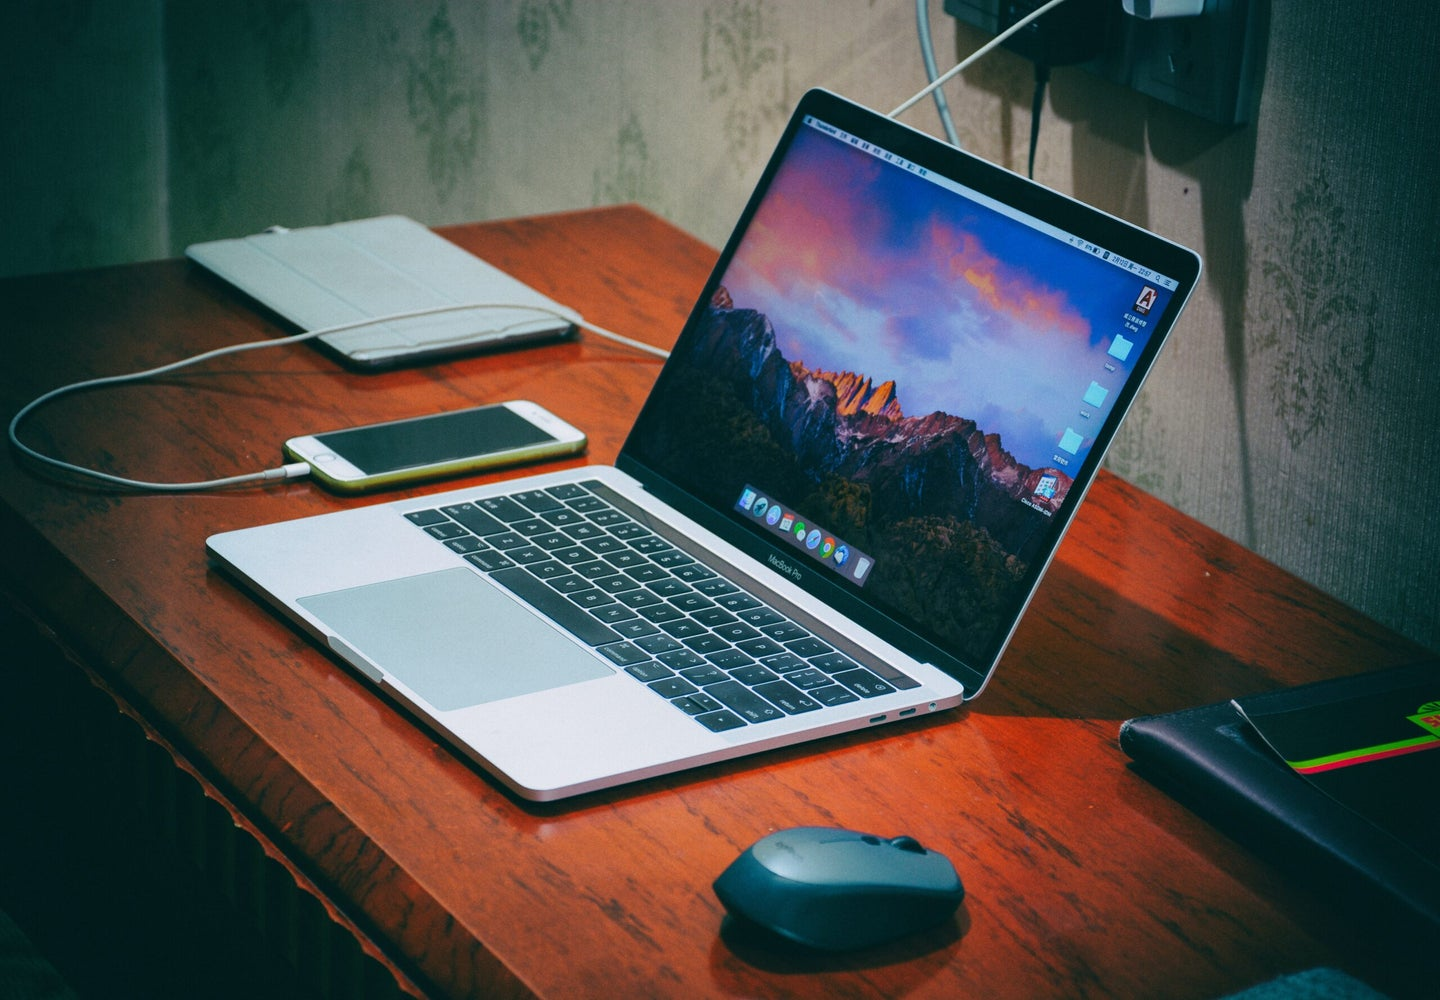 usb-c compatible macbook sitting on a desk with phone and wireless mouse